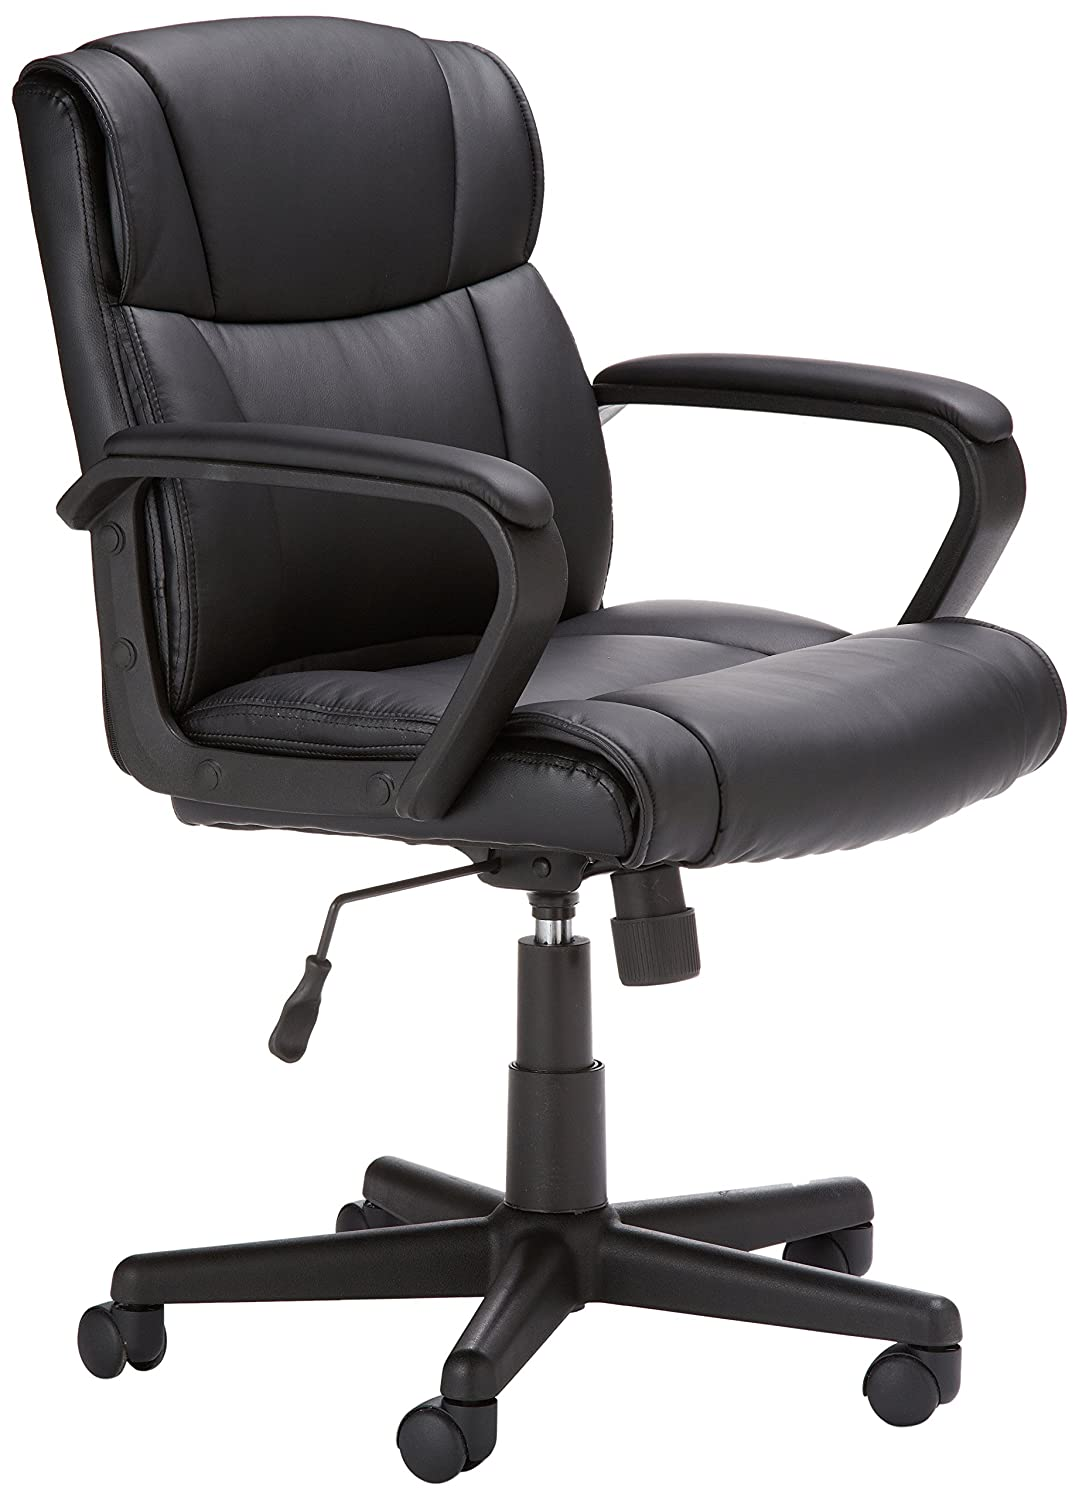 Office Furniture: Best Office Chairs For Lower Back Pain